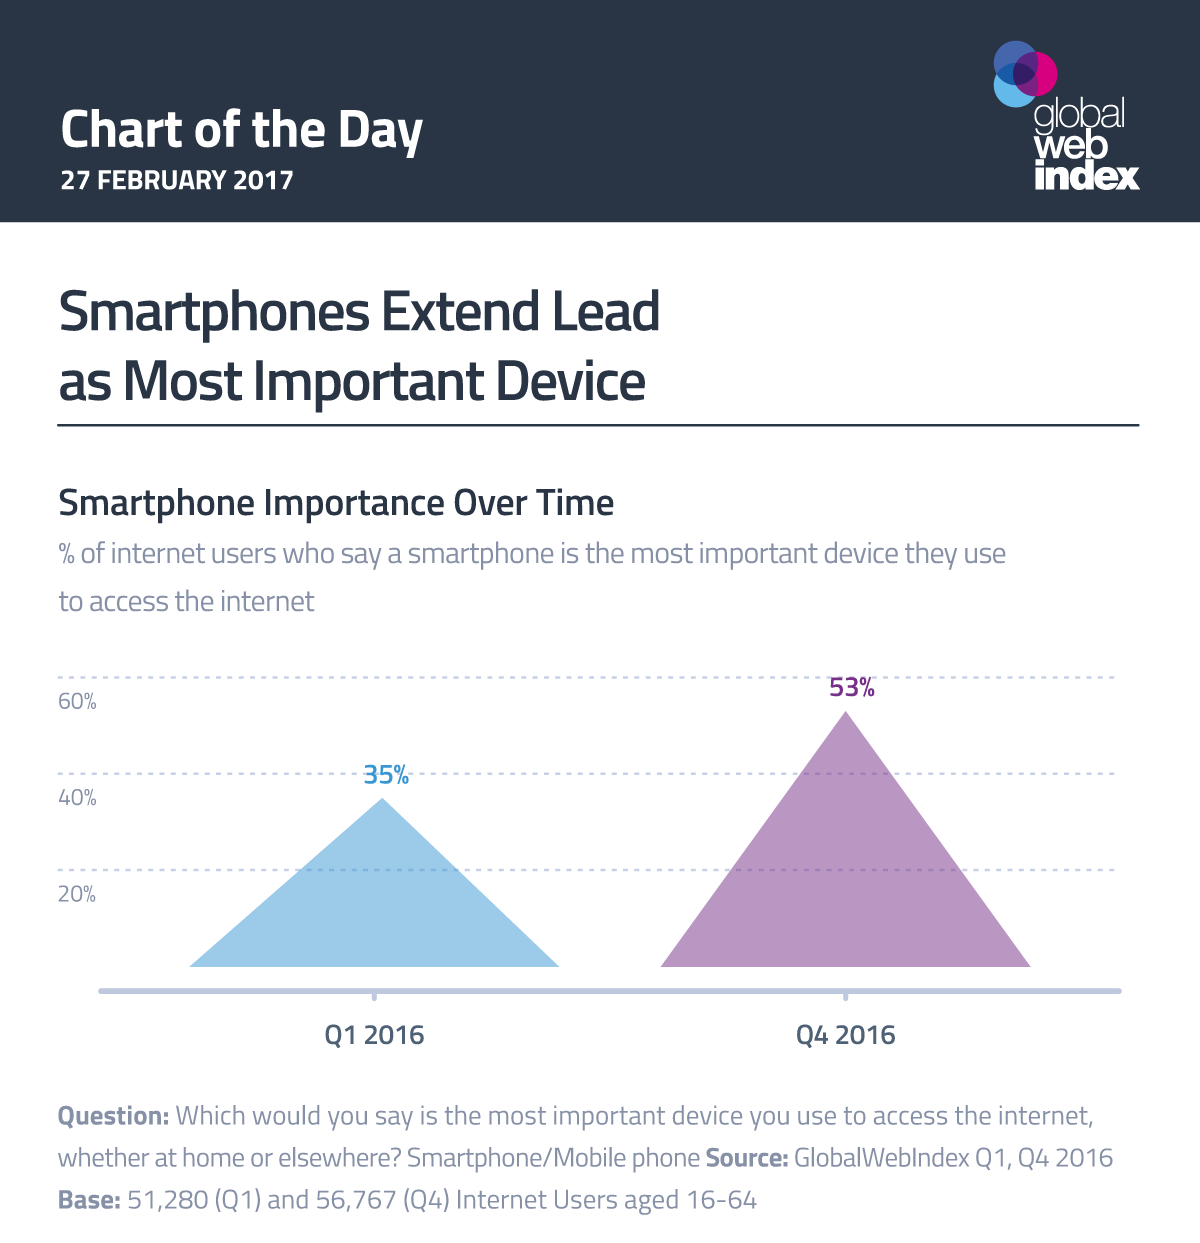 Smartphones Extend Lead as Most Important Device